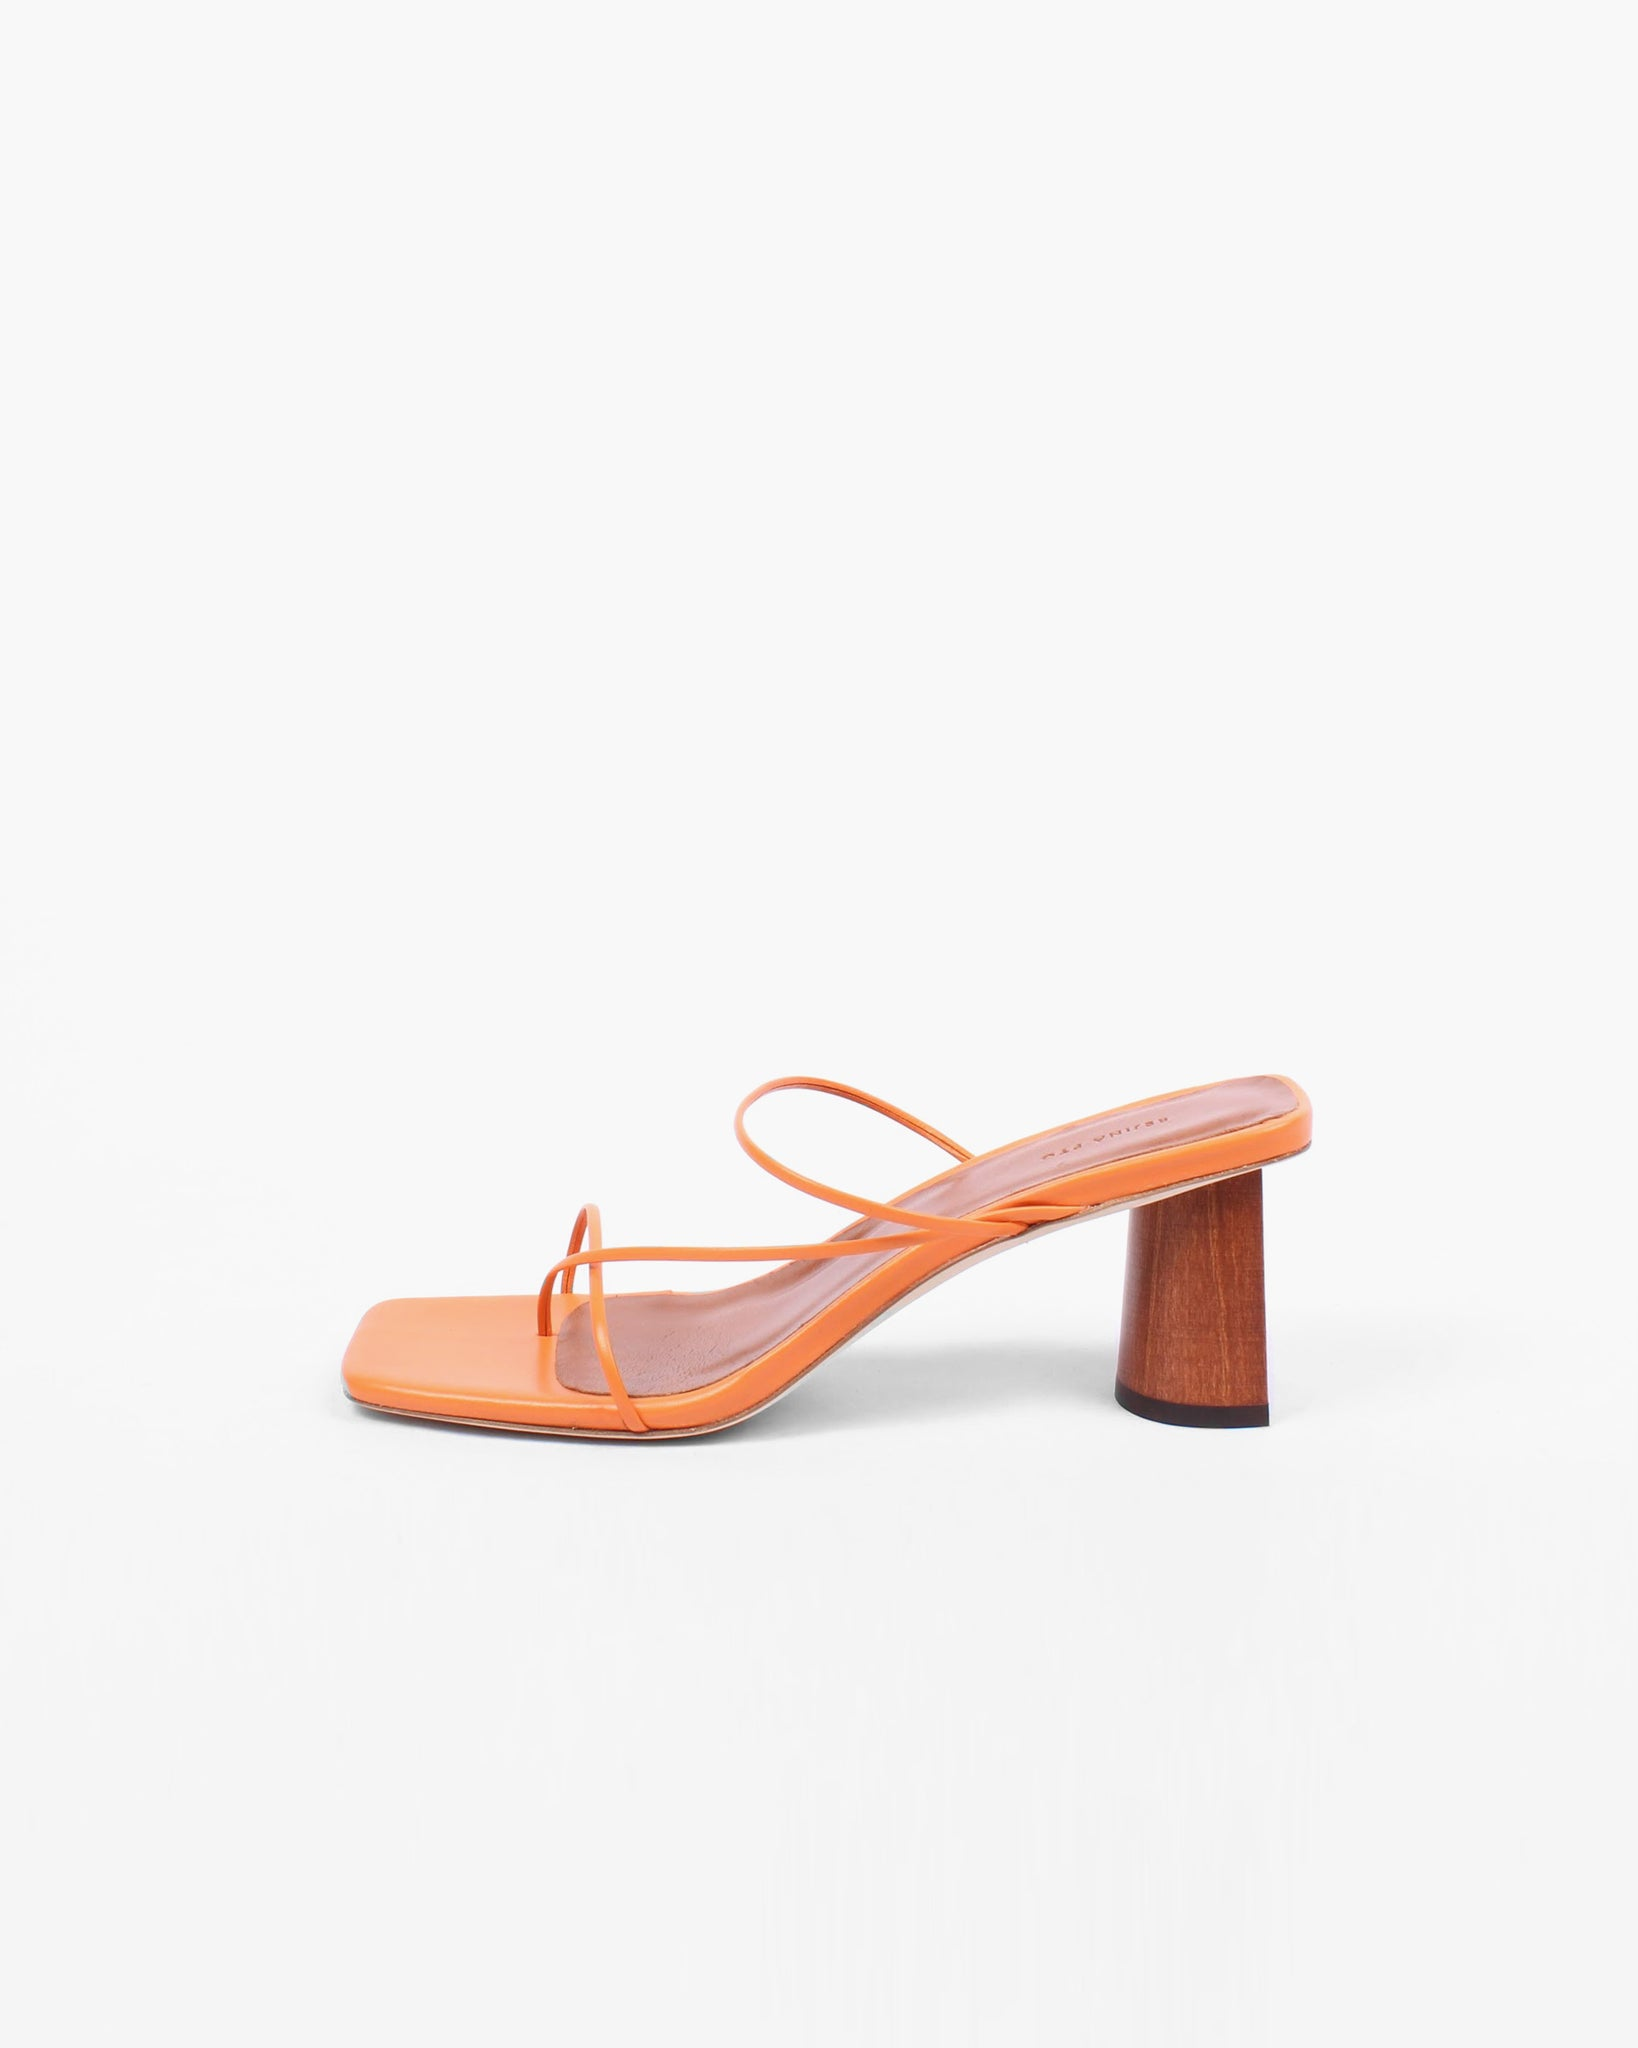 Harley Sandal Leather Orange